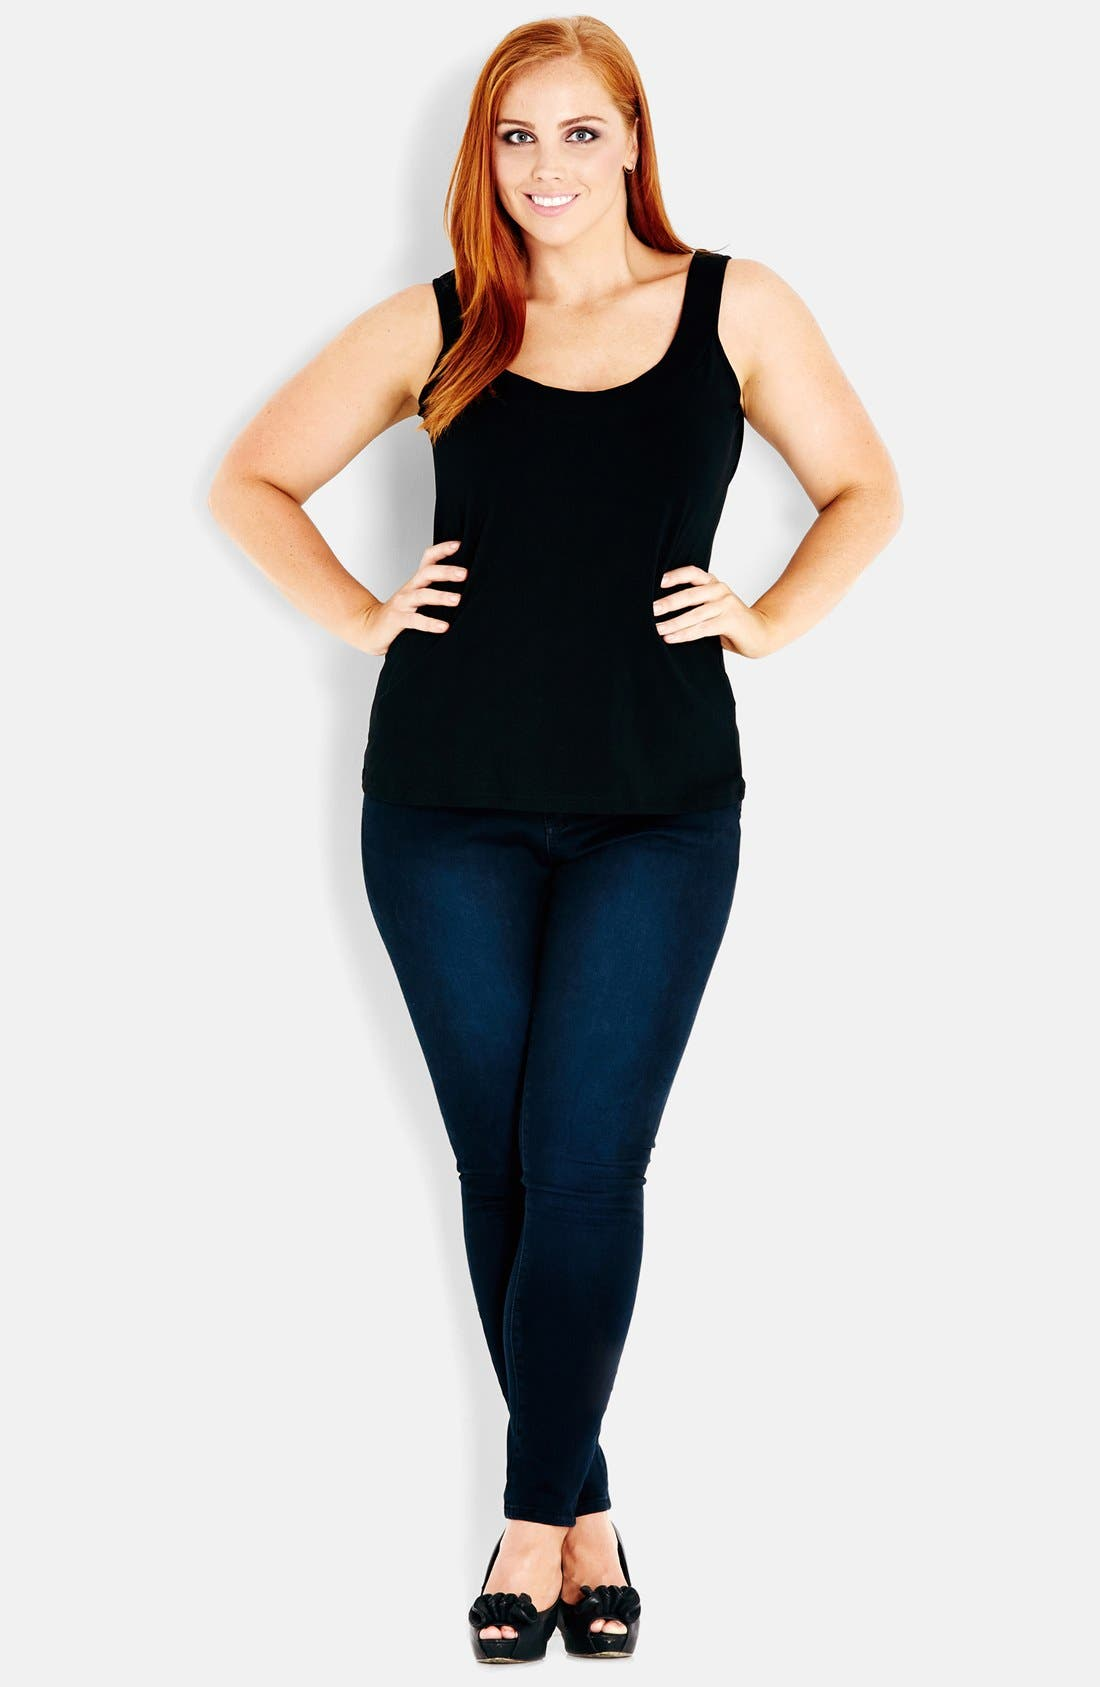 Alternate Image 1 Selected - City Chic 'Ballerina' Camisole (Plus Size)